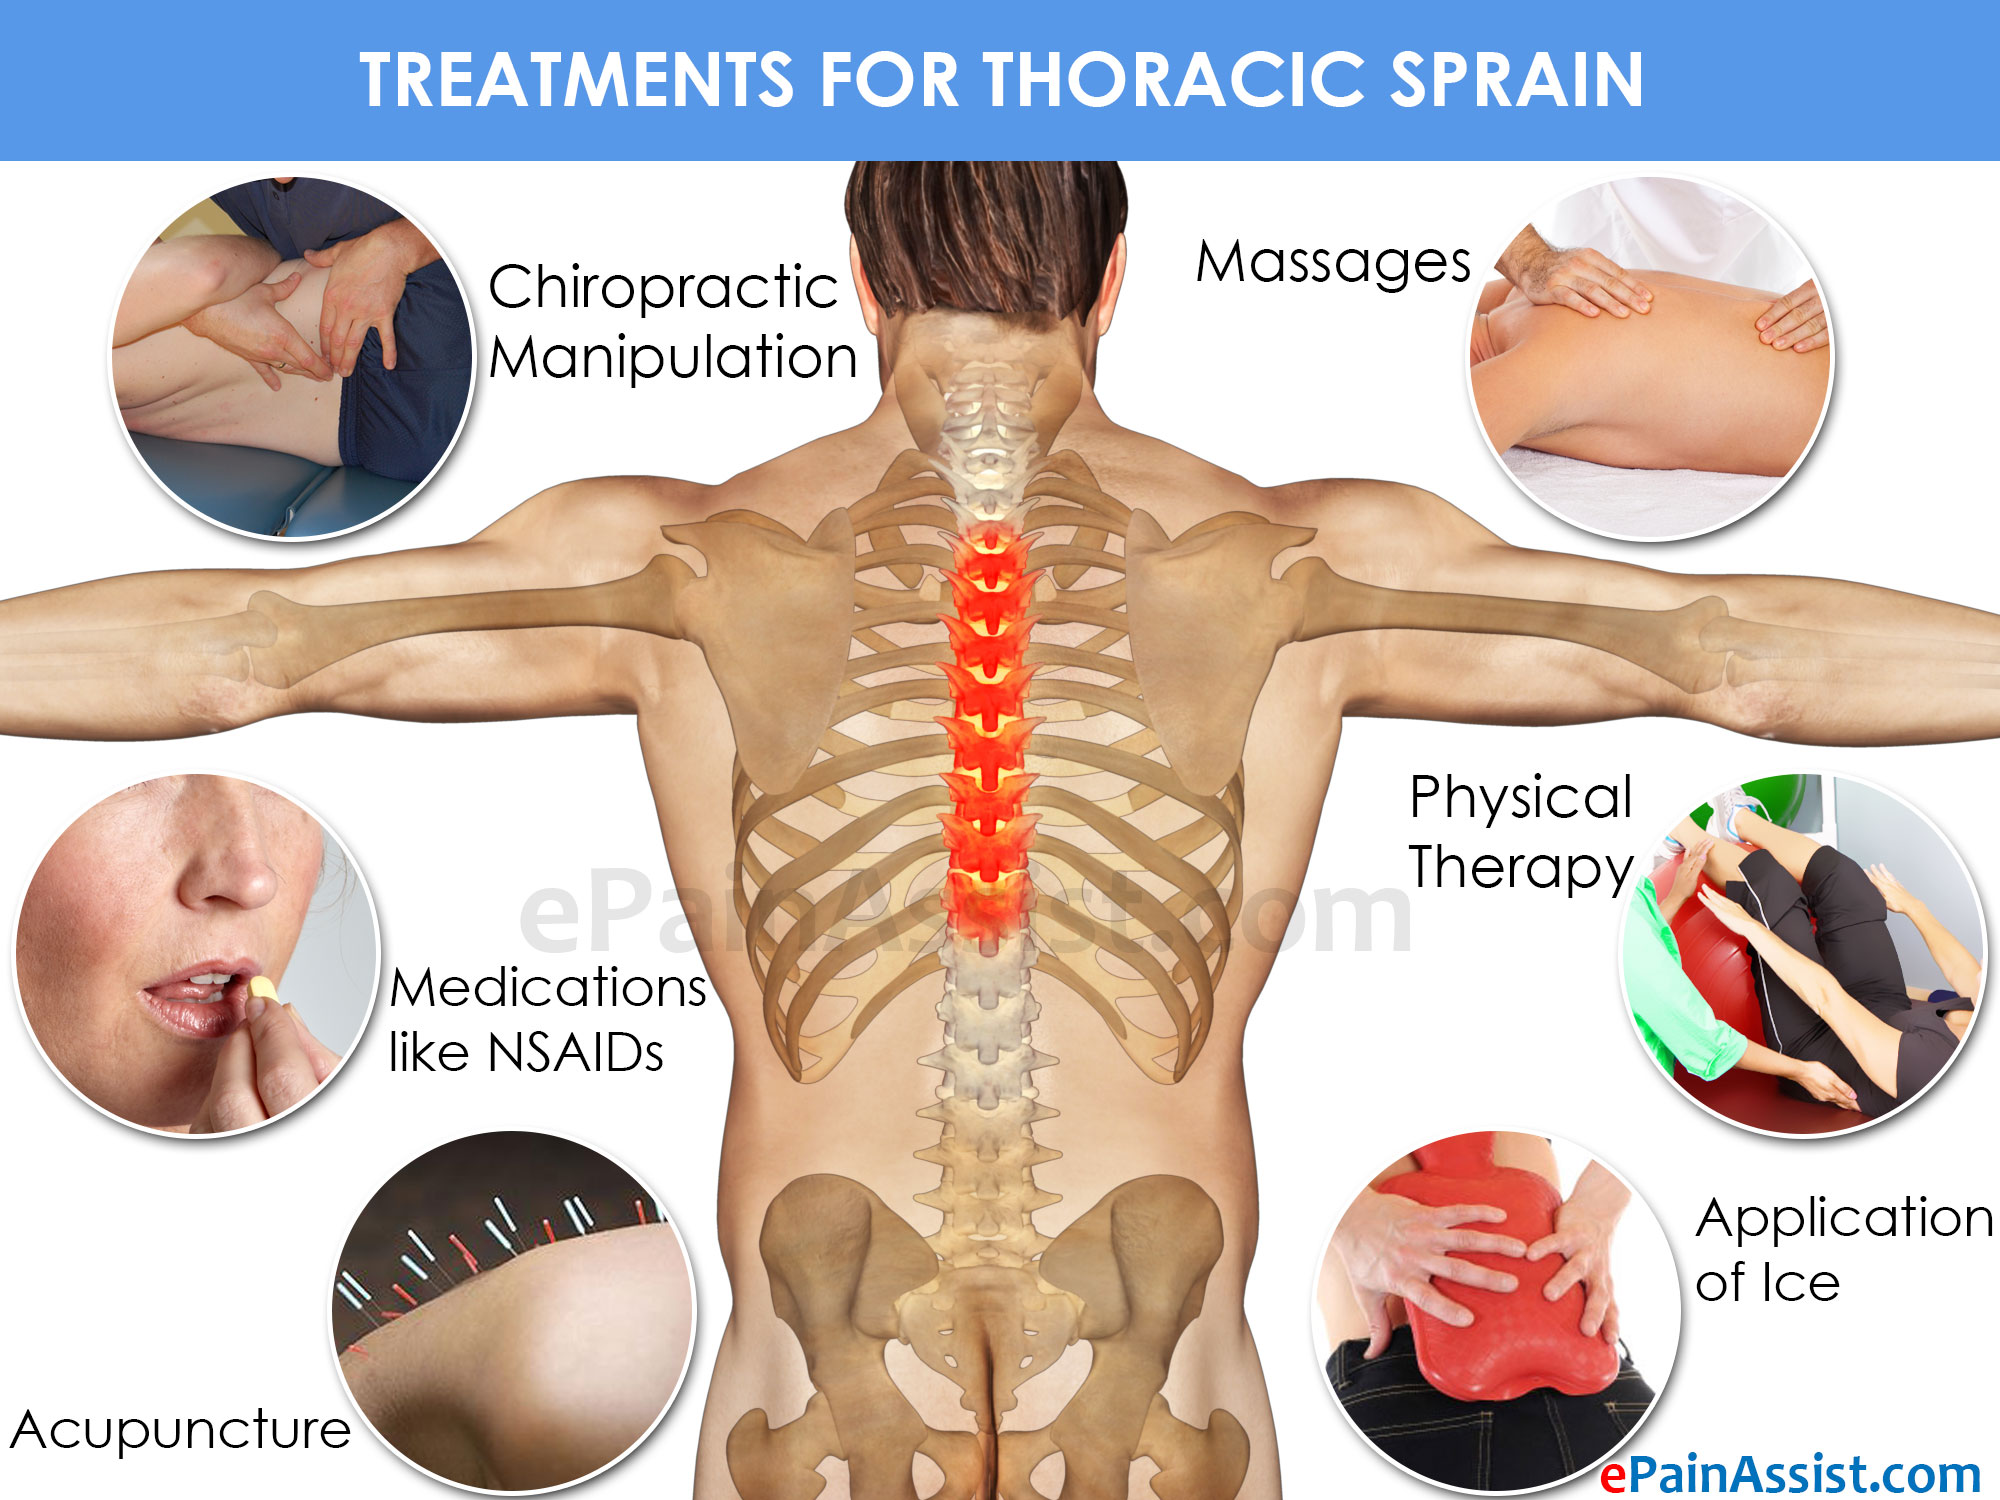 Thoracic Sprain Treatment, Exercise, Prevention, Symptoms. Set Parental Controls On Iphone. Water Damage Restoration Cincinnati. Harp Refinance Rates Today Social Work Resume. Nutrition Degree Requirements. Software Engineering Online Degree. Investment Property Mortgage Lenders. Locksmith Orange County Ca No Cost Home Loans. Computer Spy Software Reviews